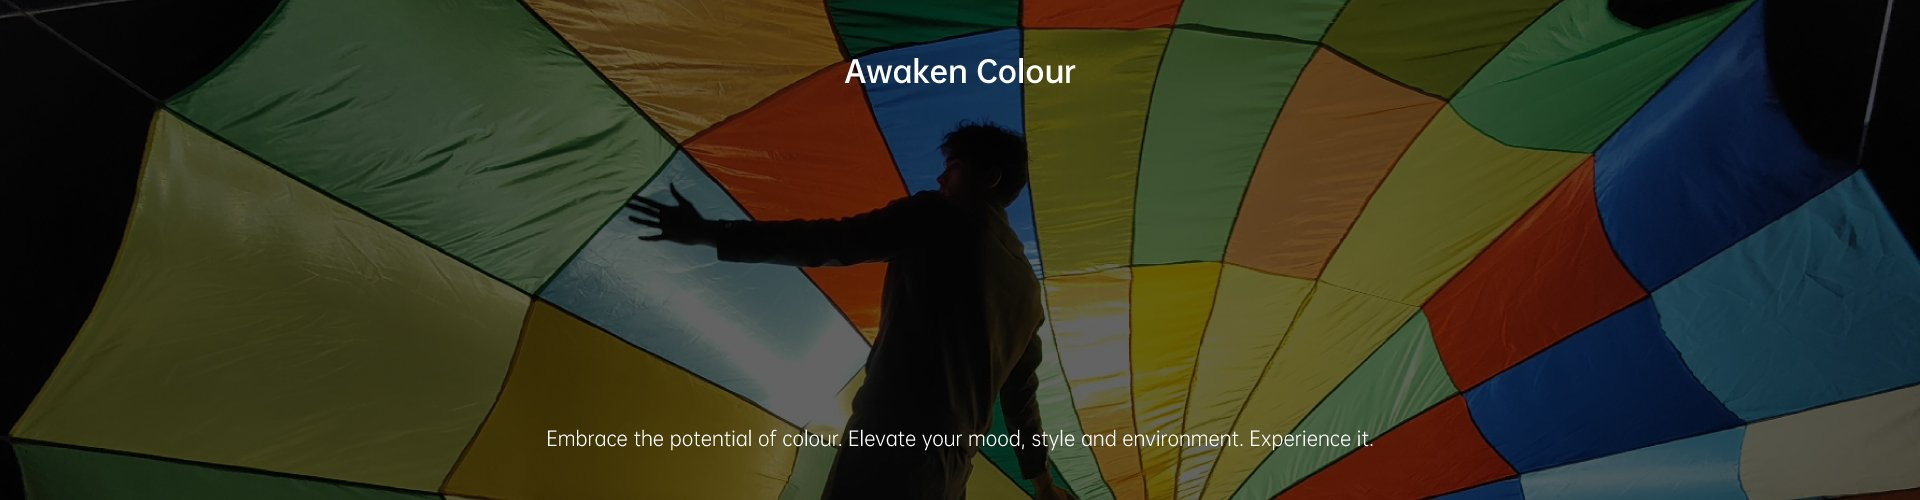 Awaken Colour